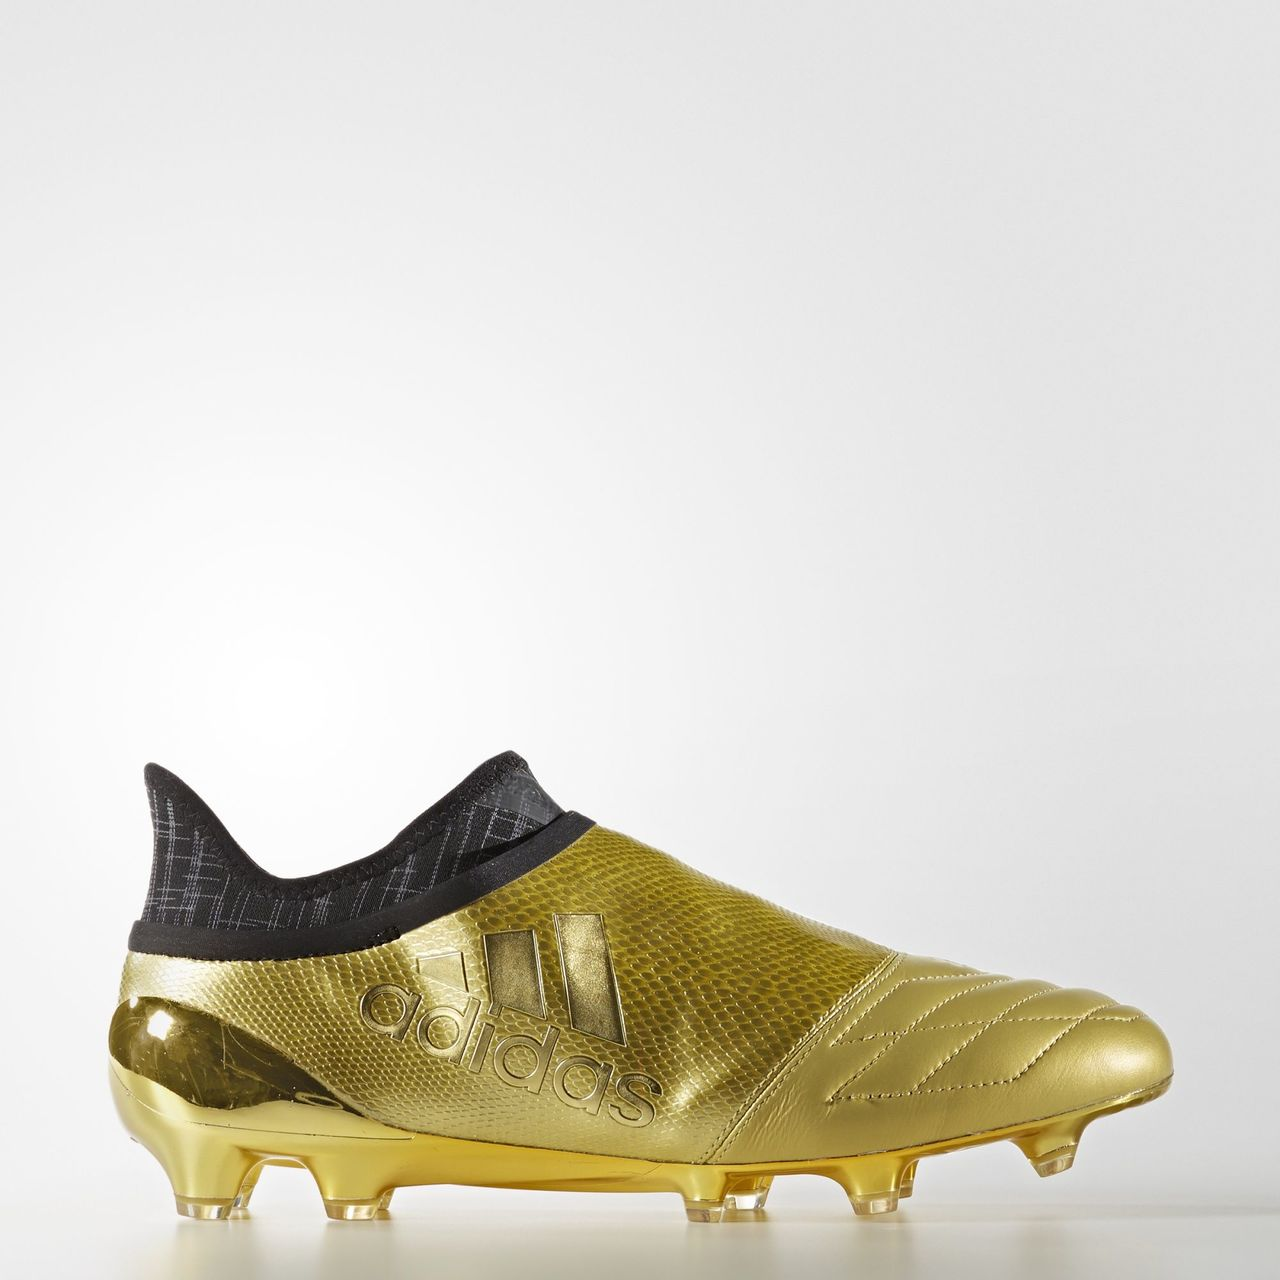 b829e8e62 Click to enlarge image  adidas_x_16_purechaos_fg_ag_space_craft_gold-metallic_a.jpg ...